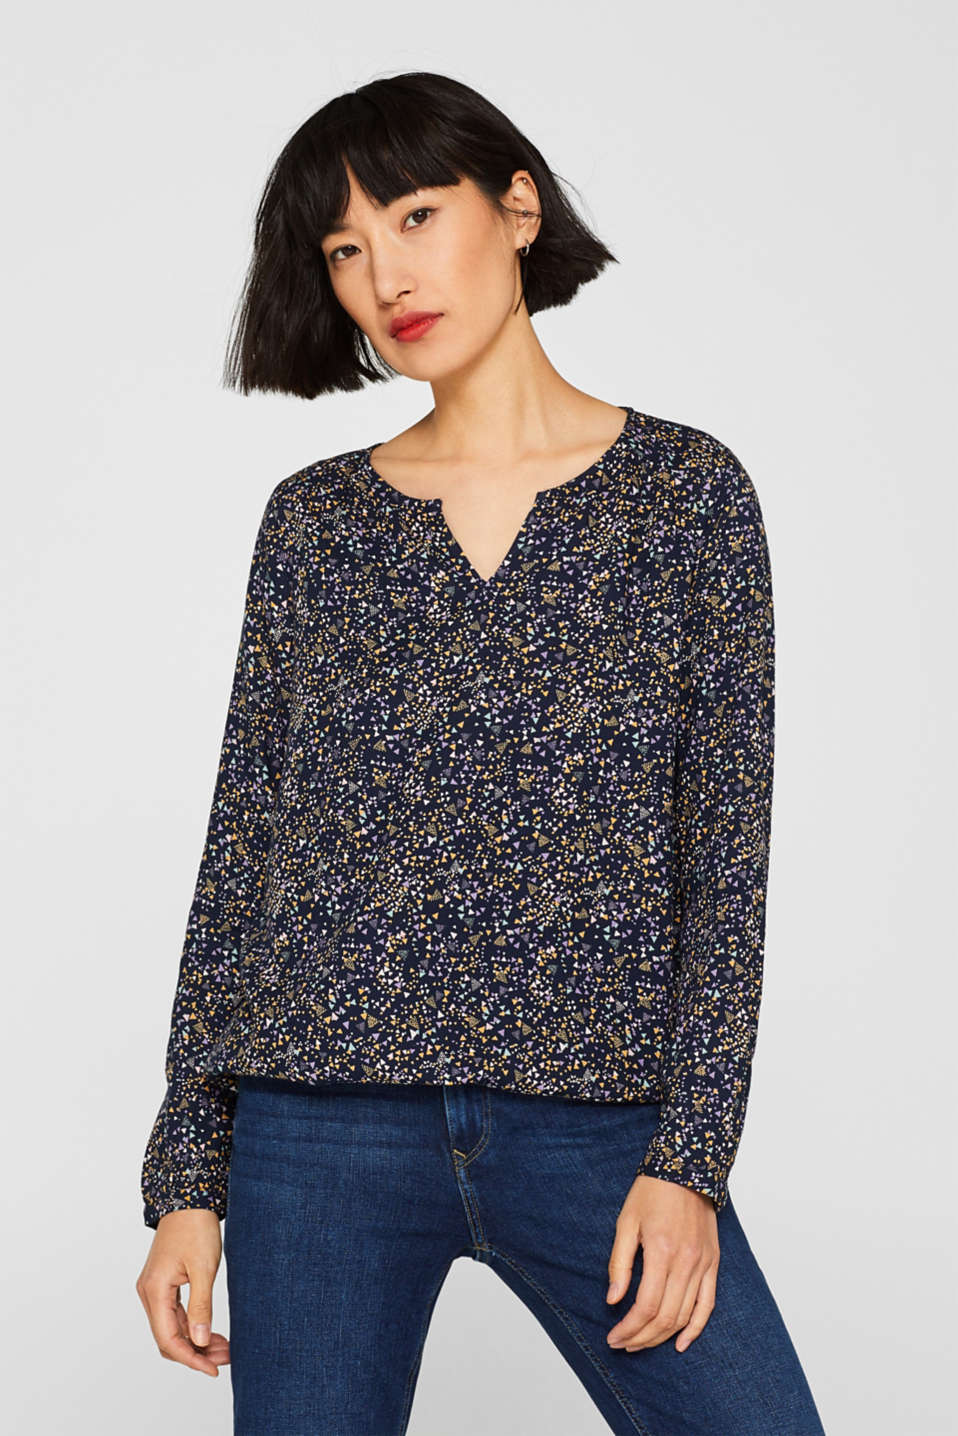 Esprit - Print blouse with a cup-shaped neckline